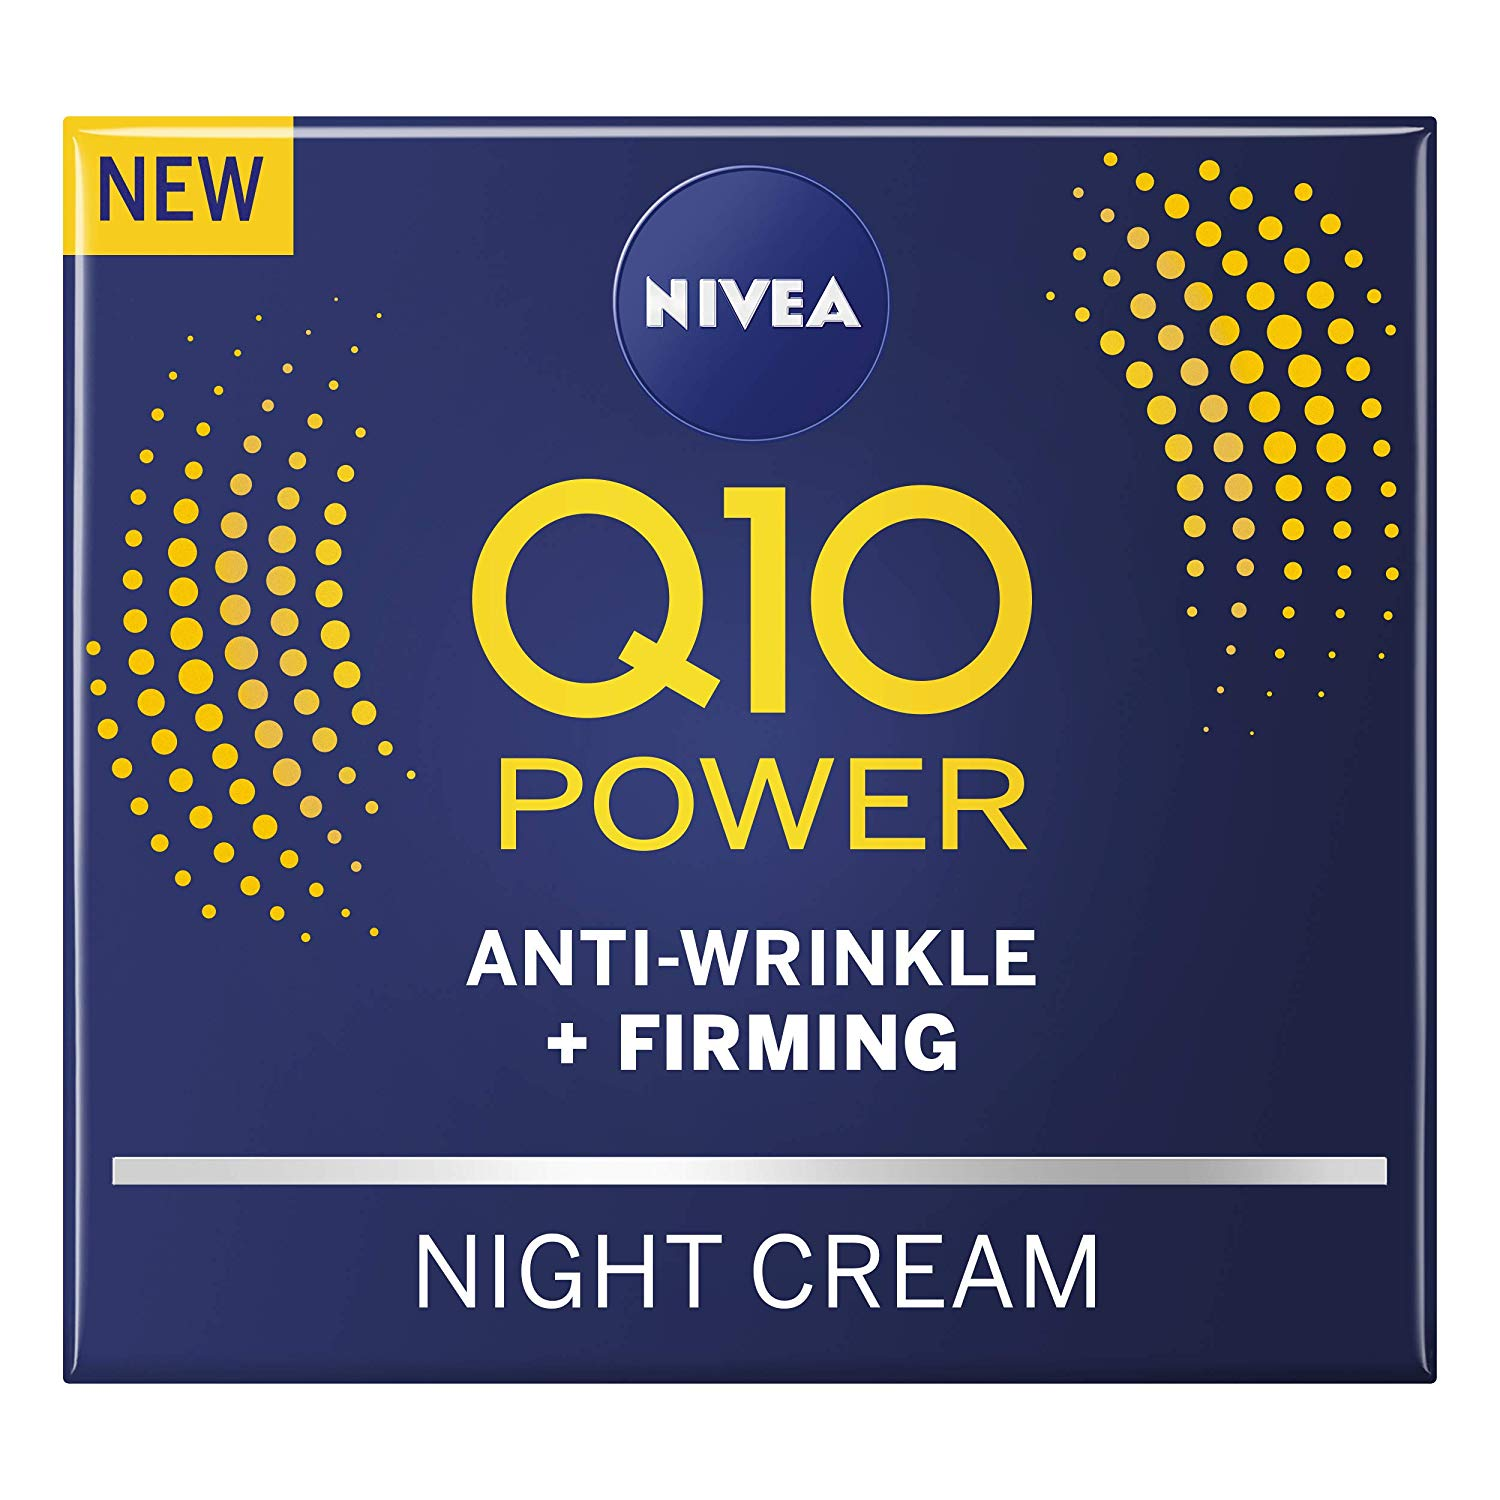 NIVEA Q10 Power Anti-Wrinkle + Firming Night Cream (50ml)